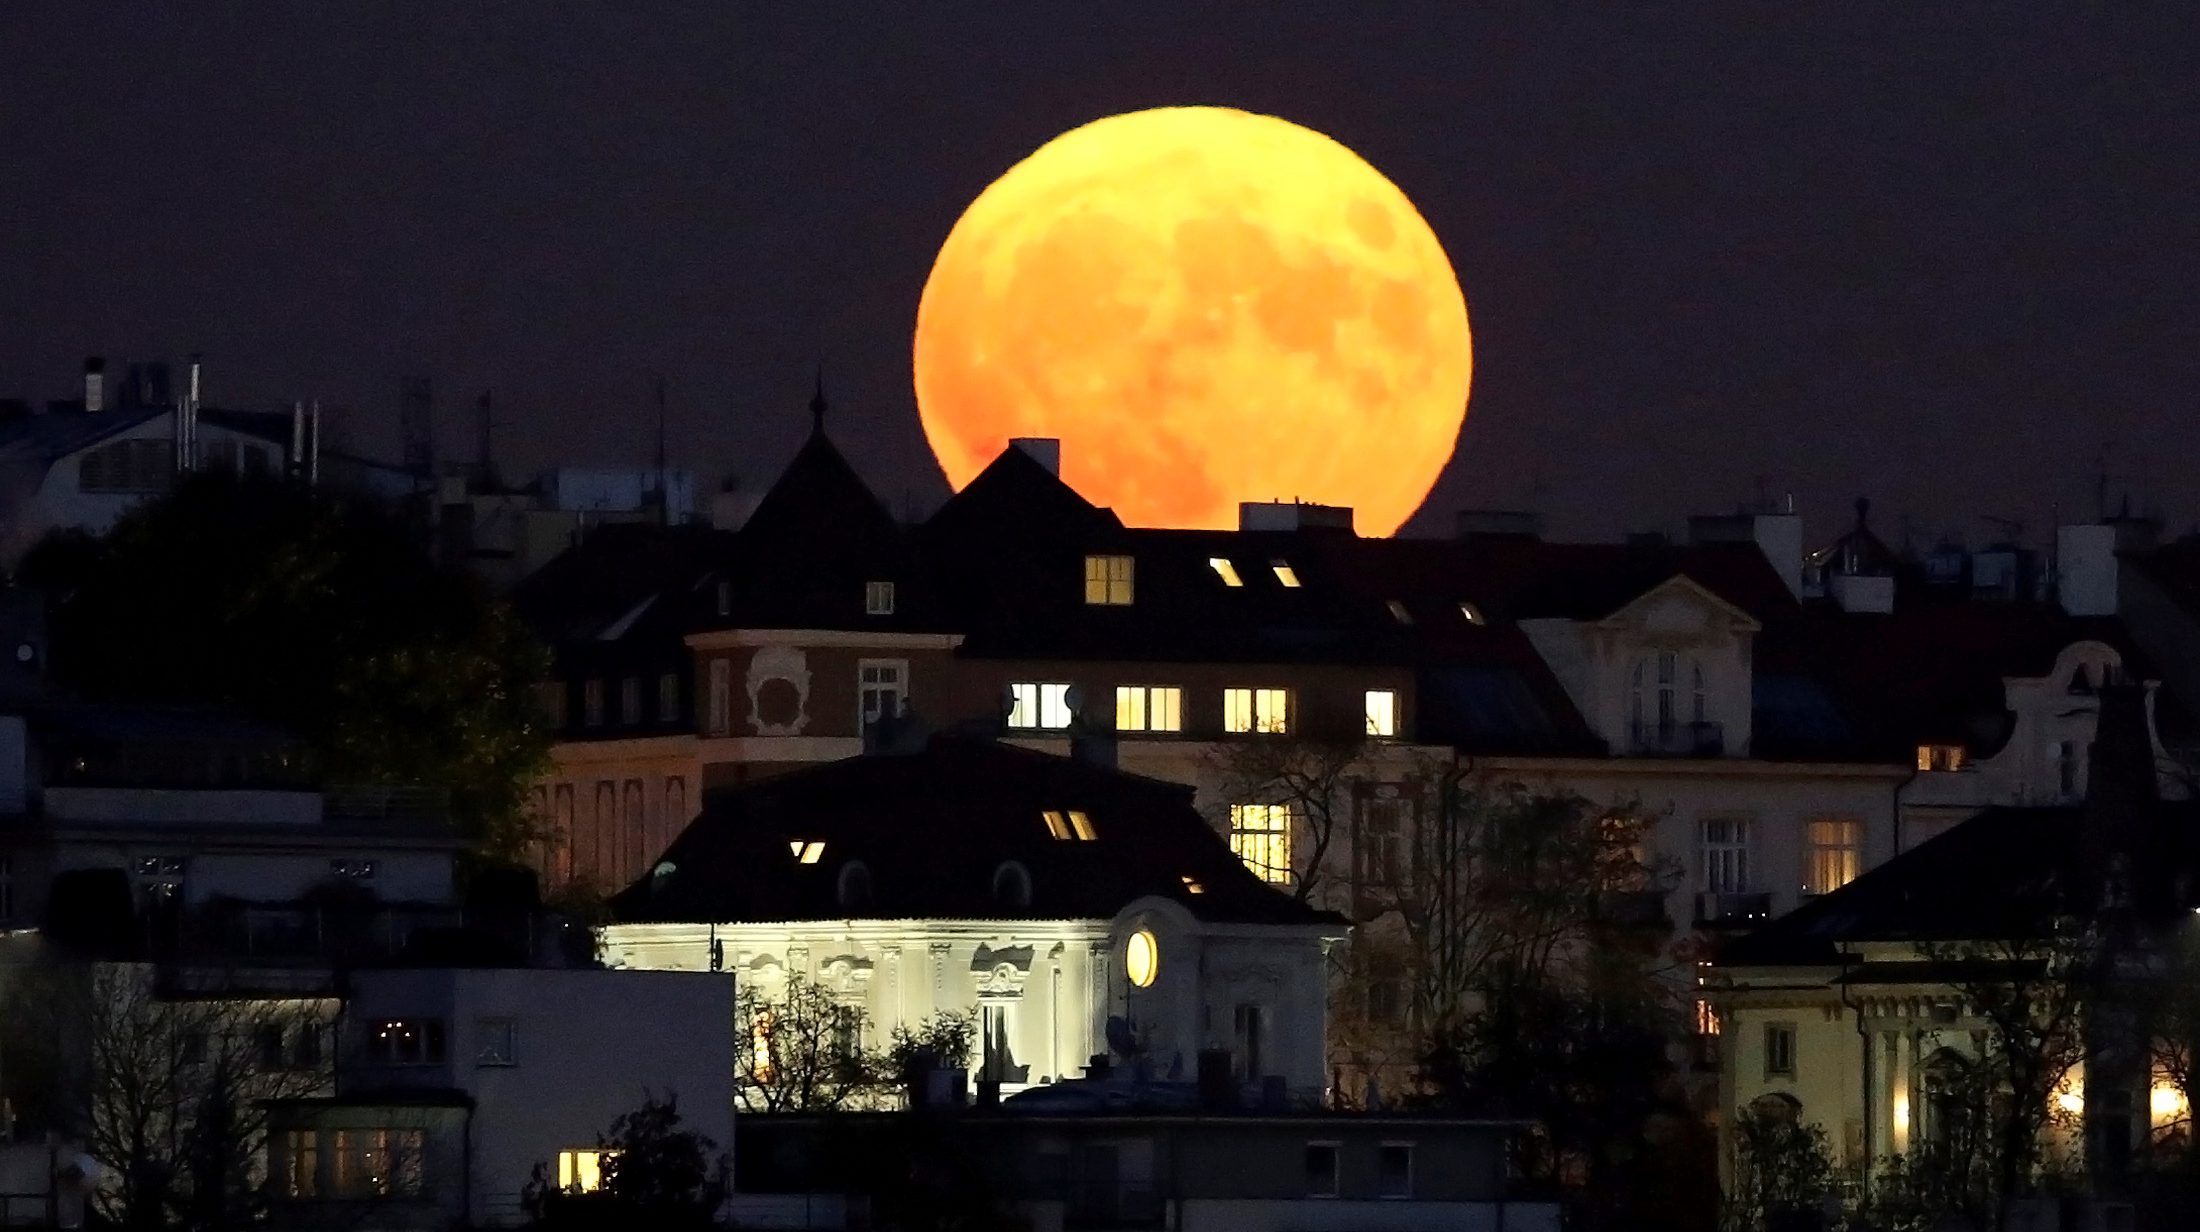 The supermoon rises in Prague, Czech Republic November 14, 2016.